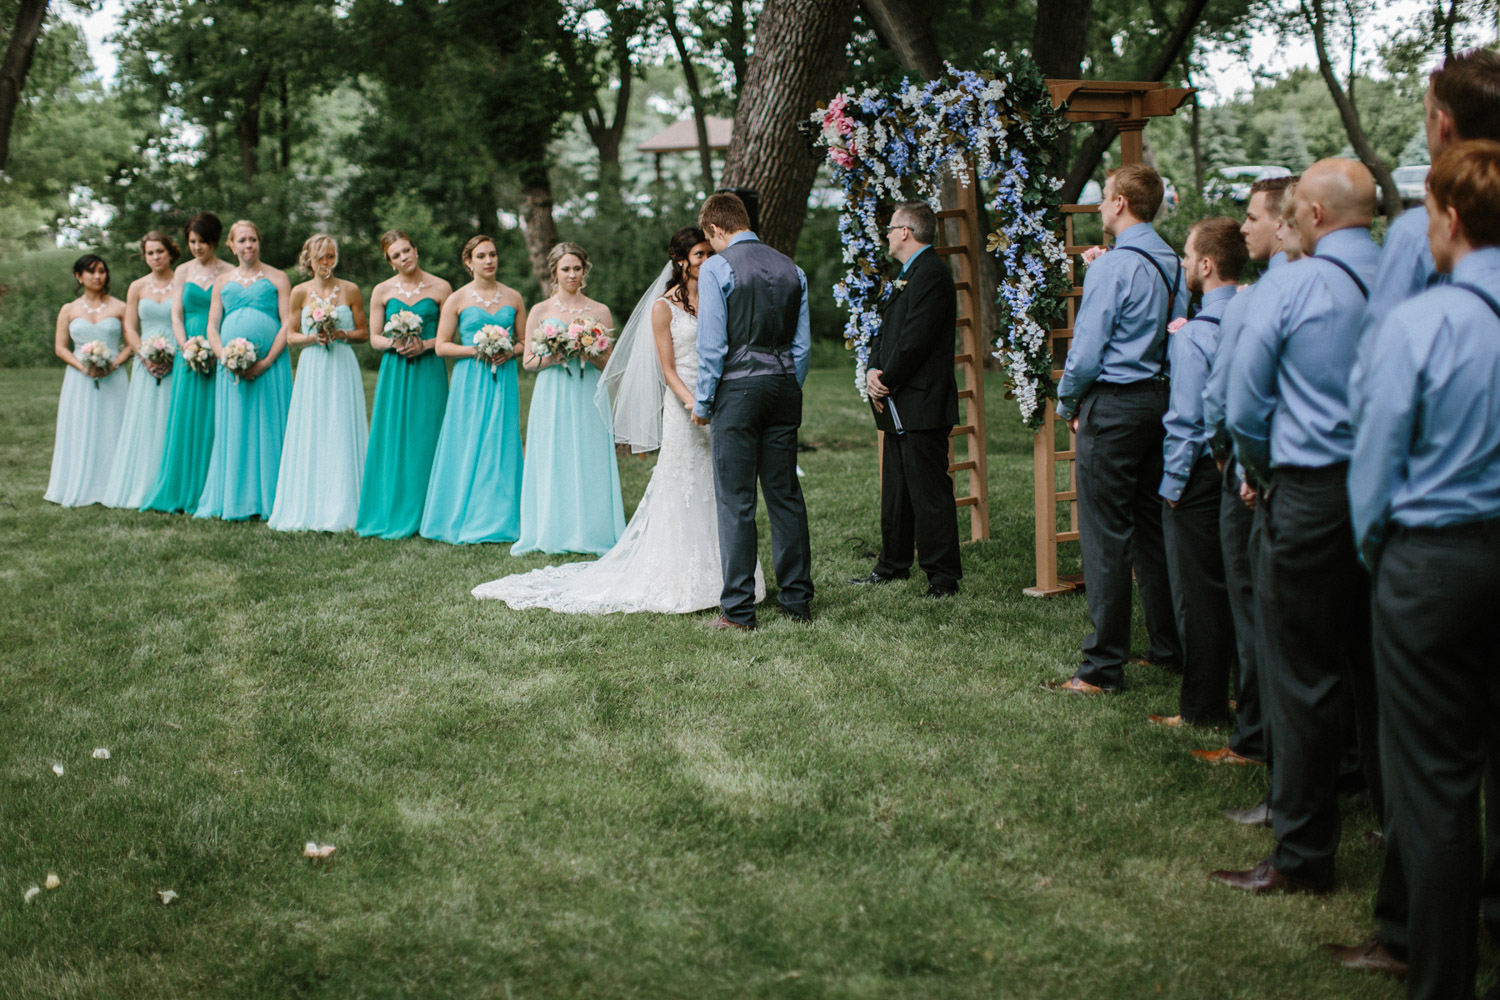 Outdoor_Wedding_SiouxFalls_MaryJoWegnerArboretum_Photographer_Calli&Jon_080.jpg